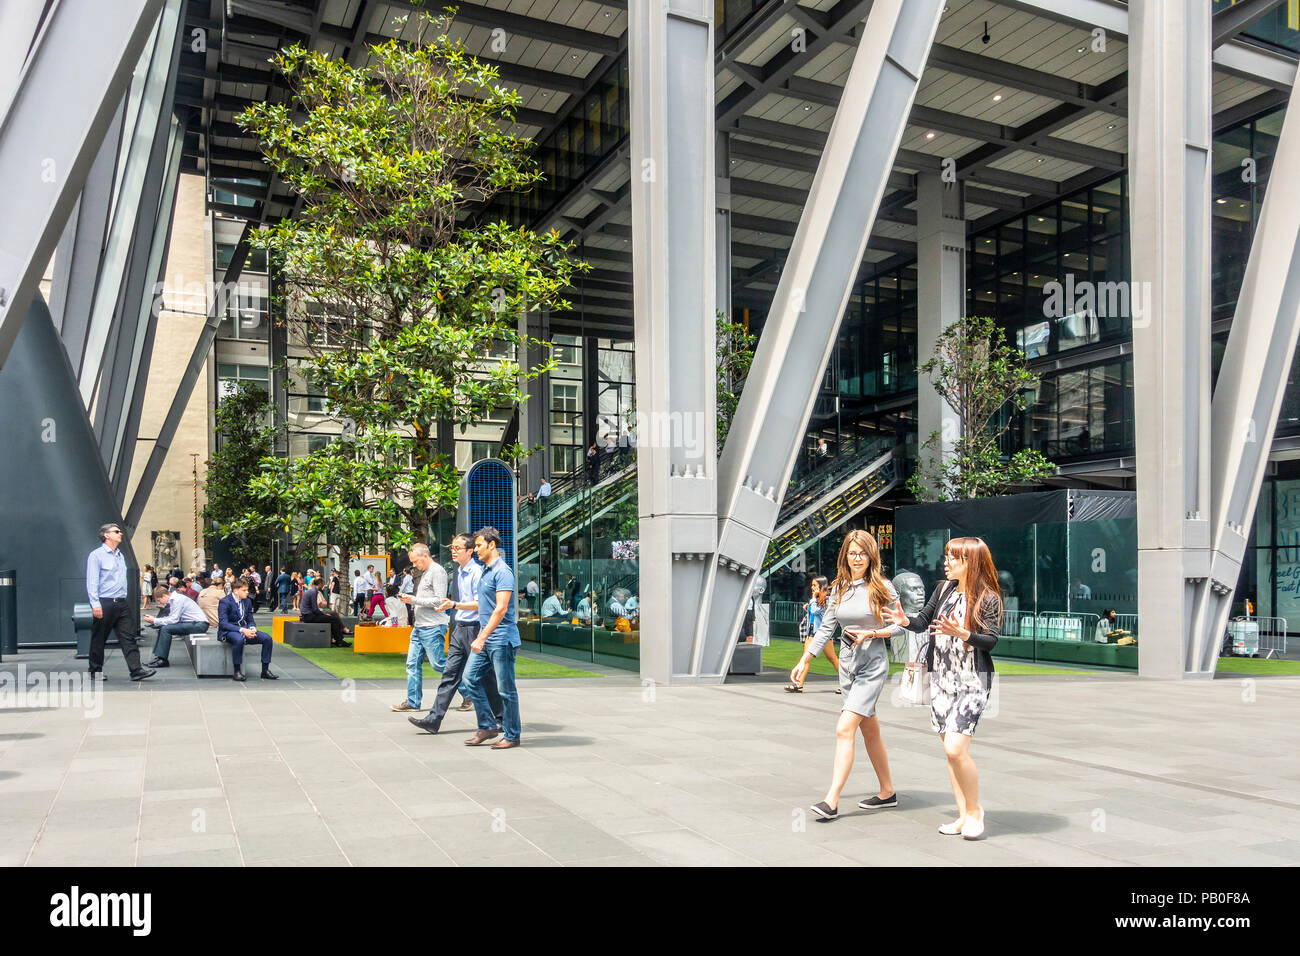 Men and women using and walking past the public space atrium at the foot of the Leadenhall Building in central London, England, UK - Stock Image